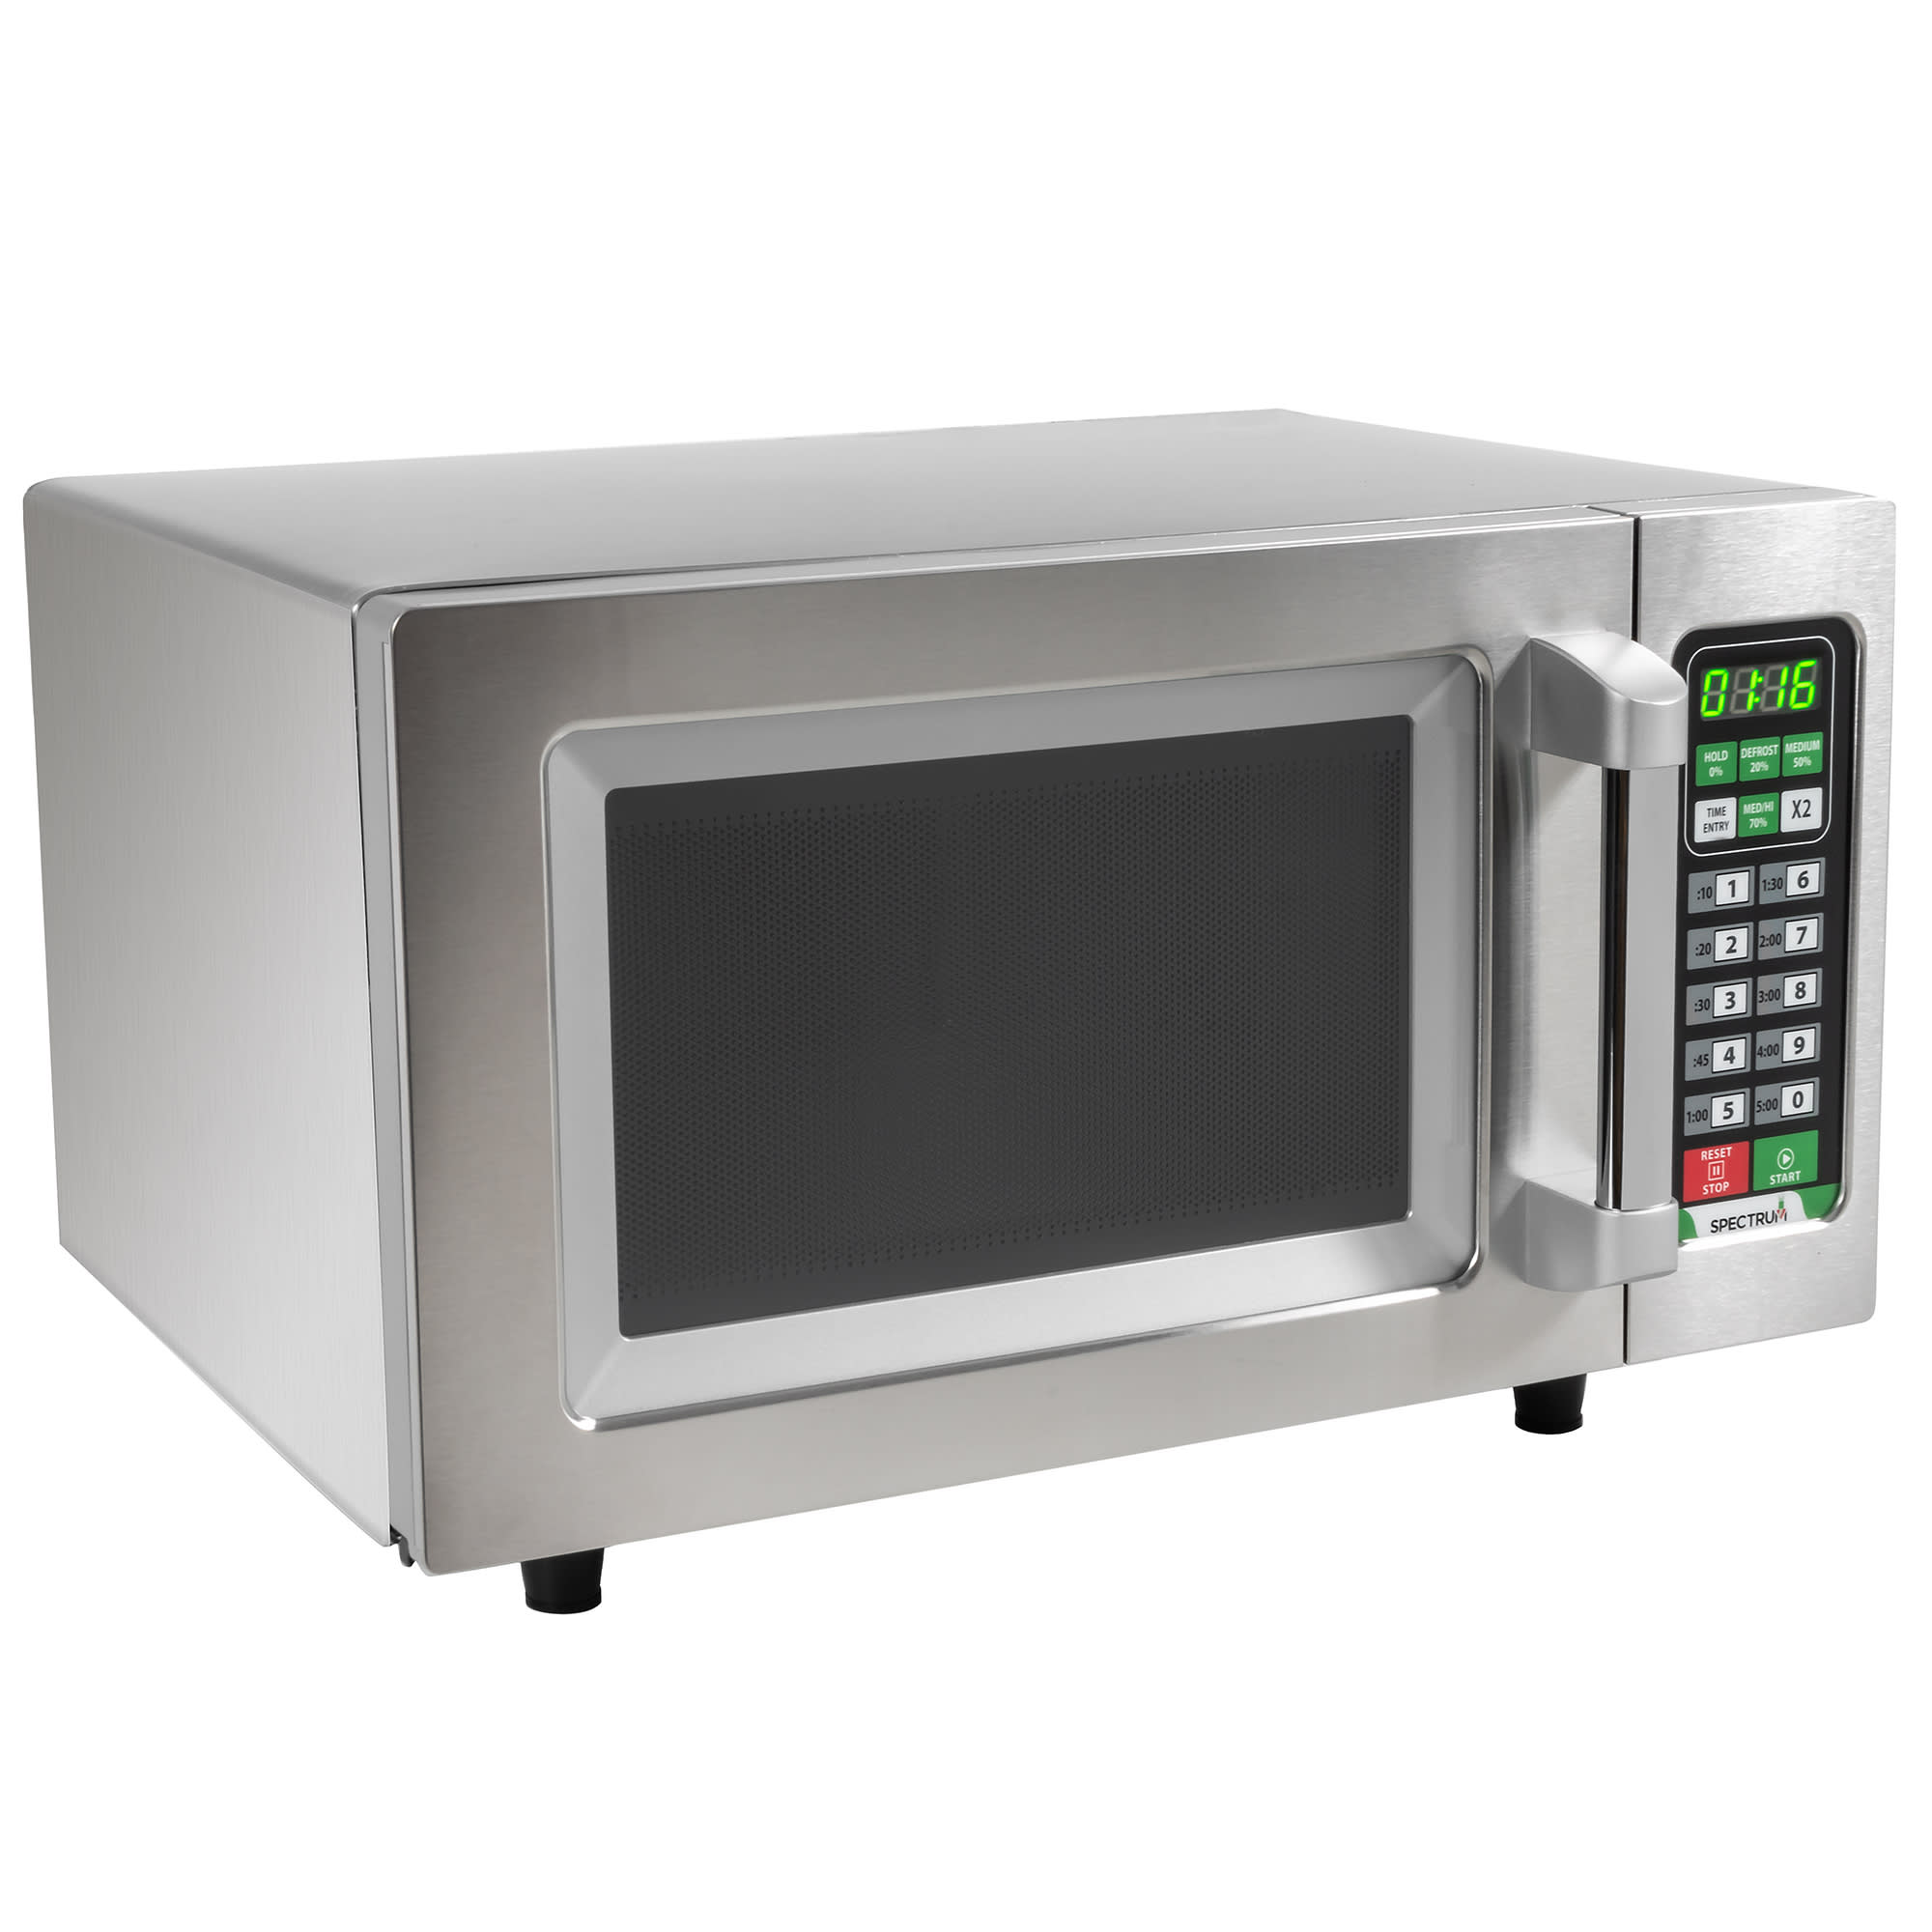 Winco EMW-1000ST 1000w Commercial Microwave w/ Touch Pad, 120v